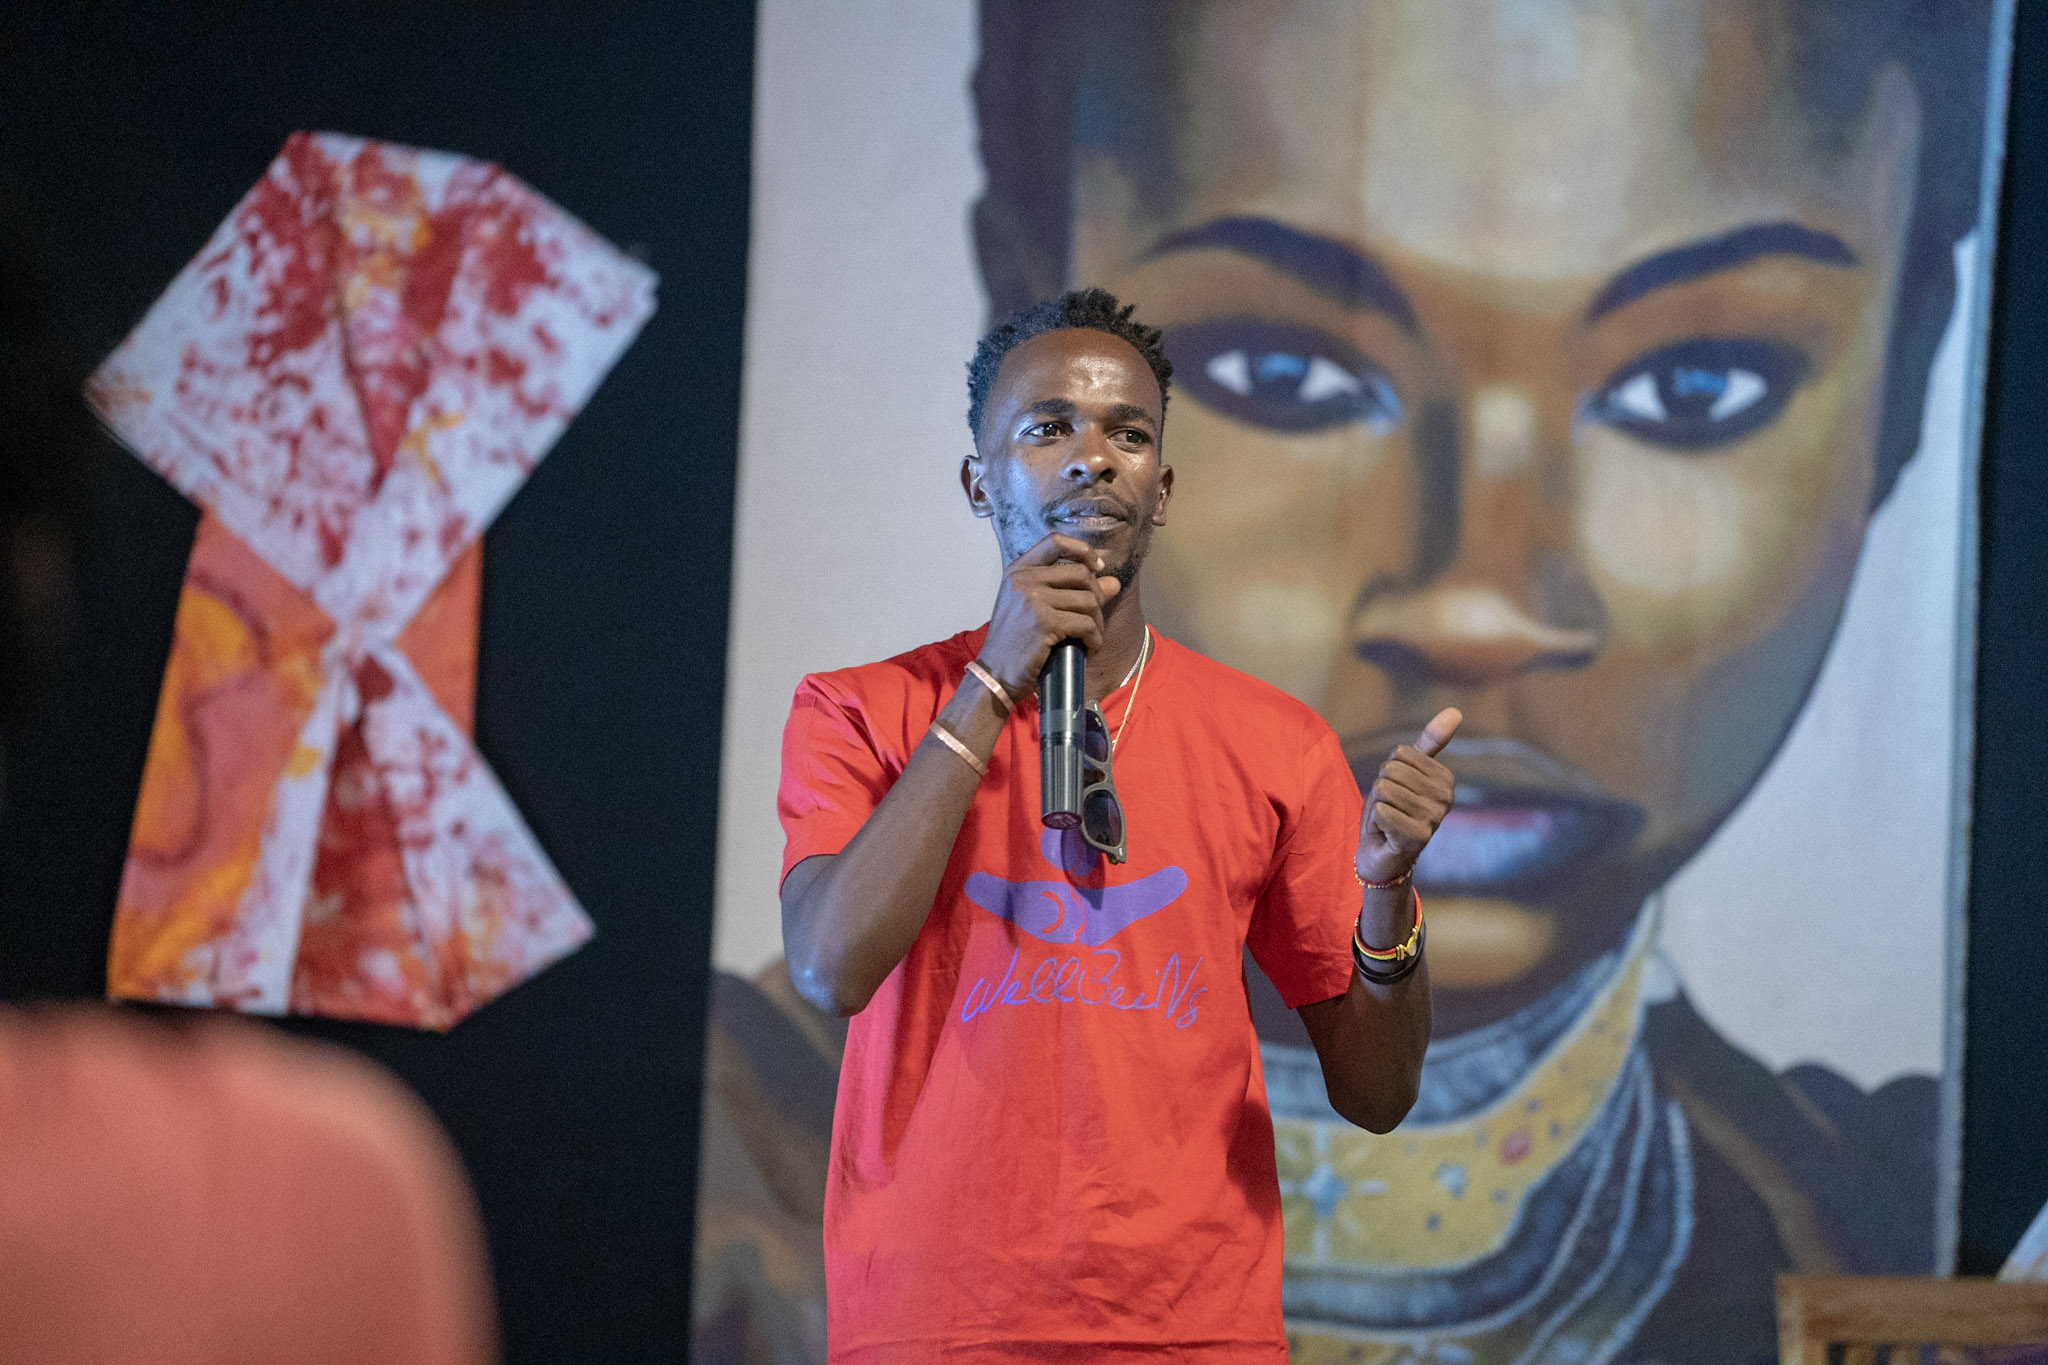 Shyaka Lwanyaaga Farid at the launch of the My Period is Awesome partnership. Photo Ulf Lundquist